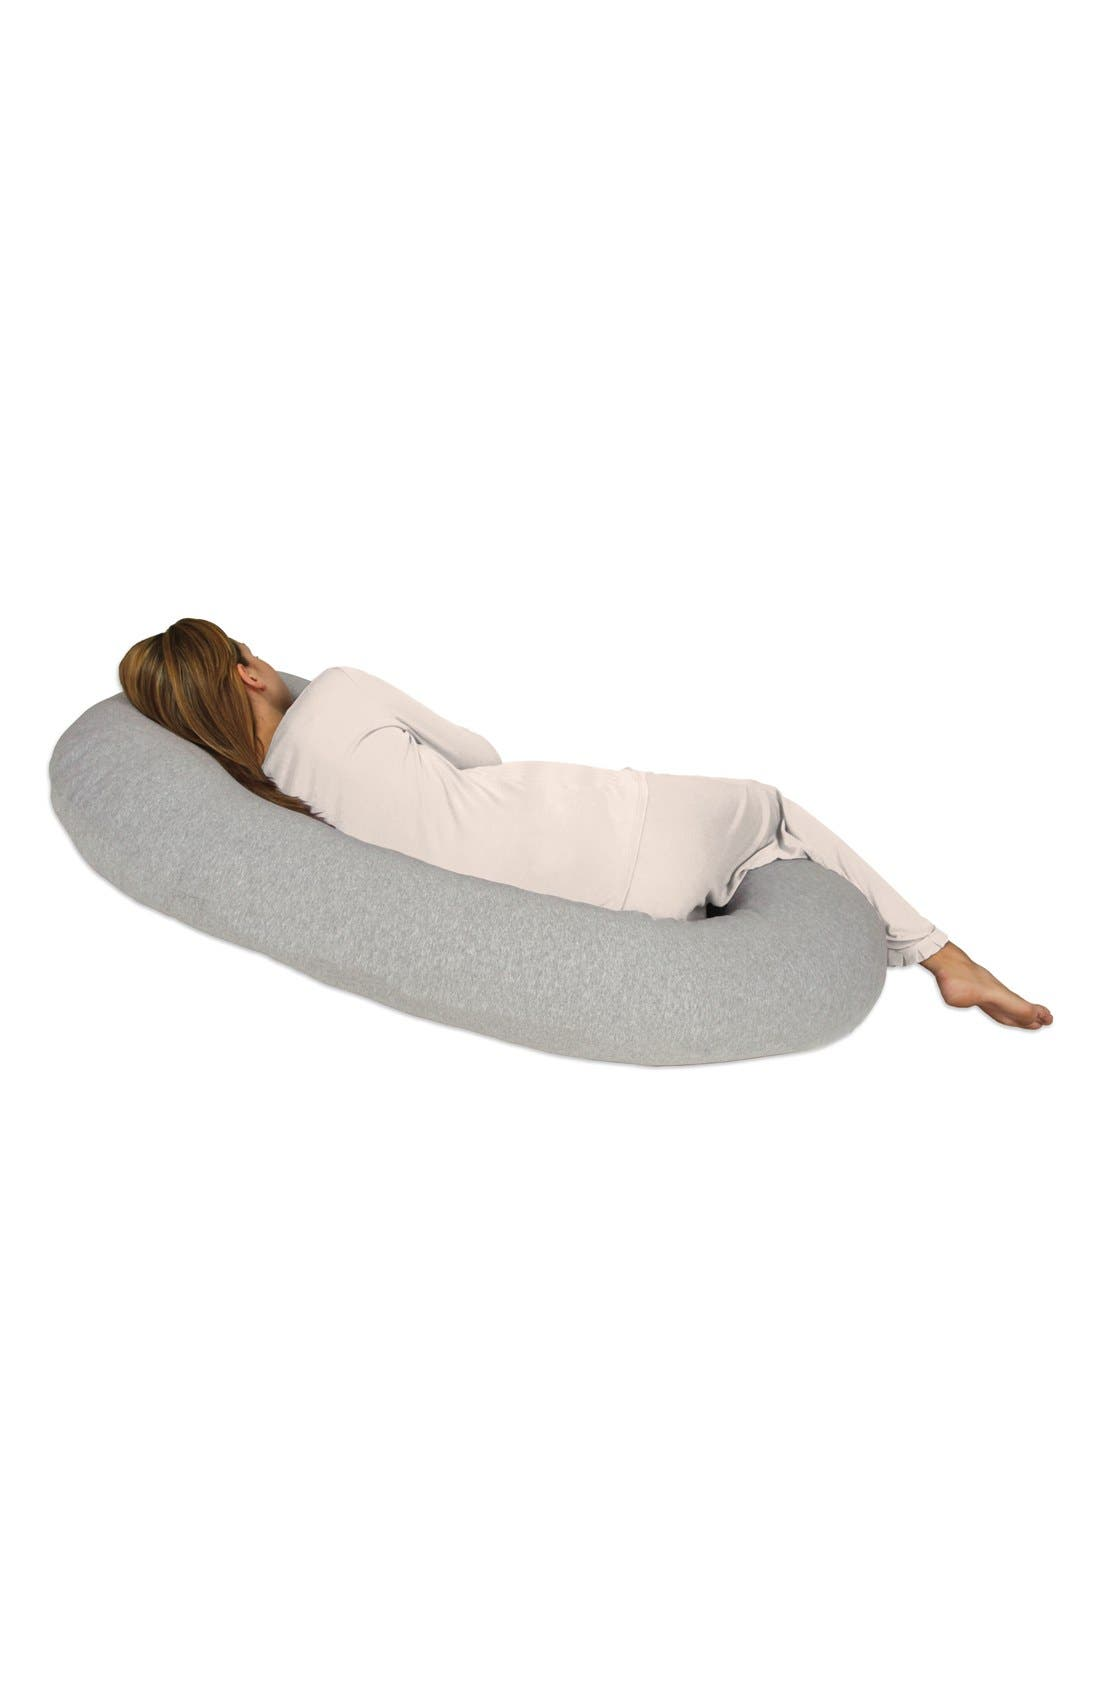 Snoogle Chic Full Body Pregnancy Support Pillow with Jersey Cover,                             Alternate thumbnail 4, color,                             Heather Grey